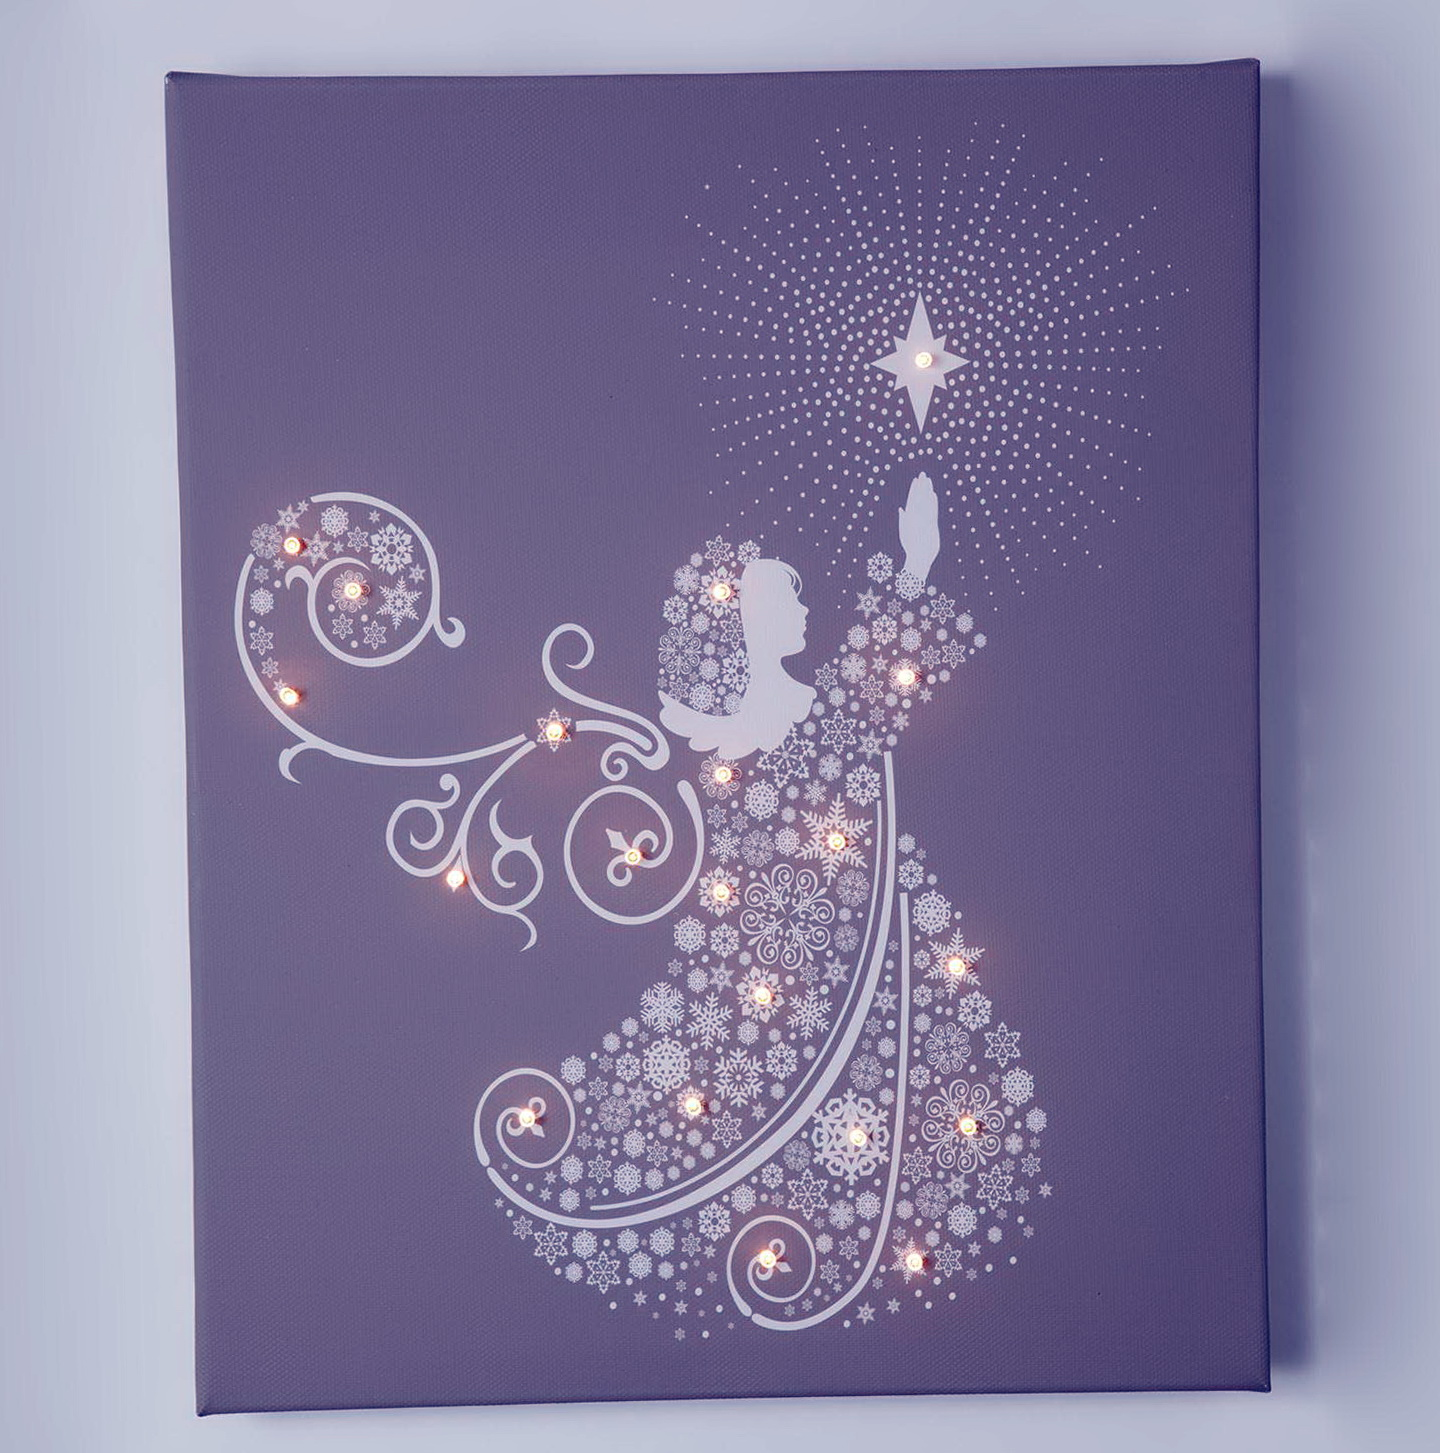 Led Wall Art Christmas